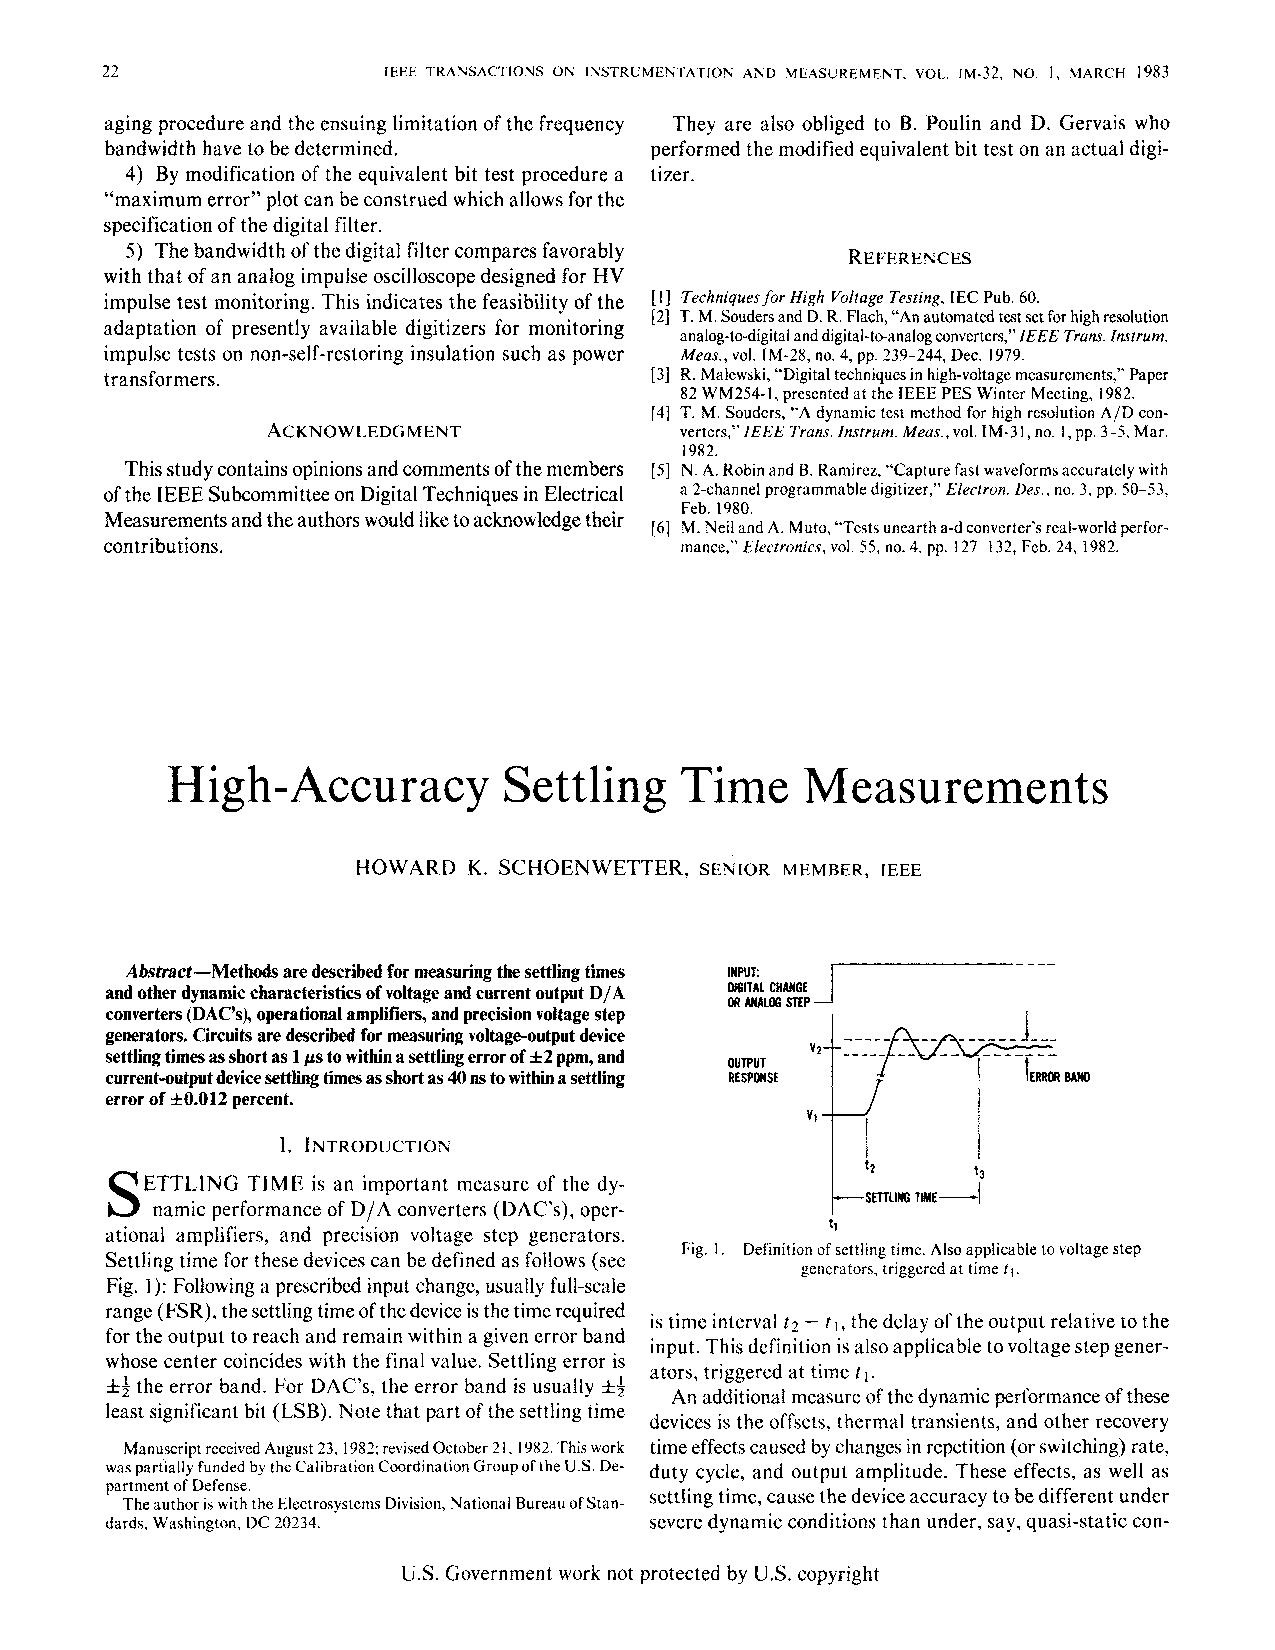 High Accuracy Settling Time Measurements Wikisource The Free Figure 2 Voltage Divider Setting Comparator Input Online Library